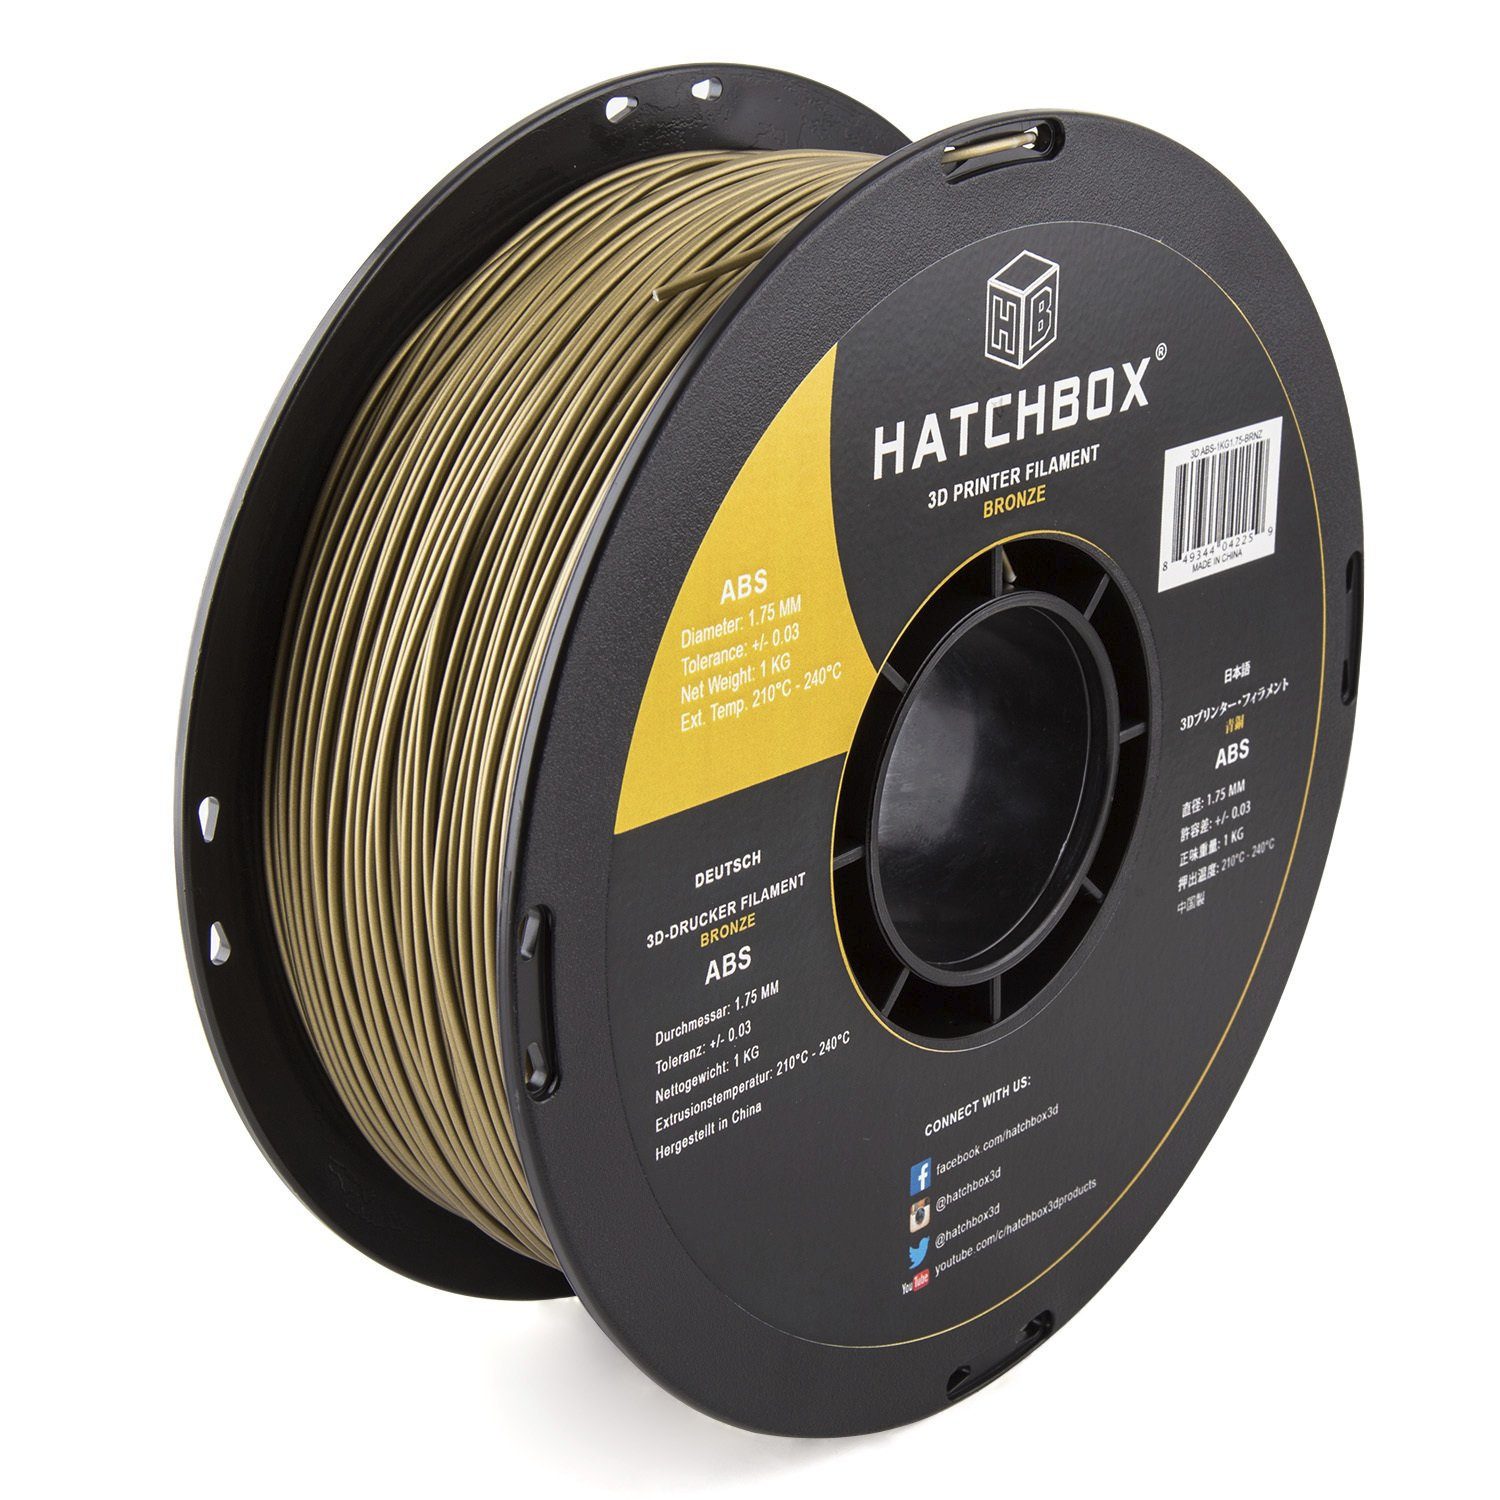 HATCHBOX ABS 3D Printer Filament, Dimensional Accuracy +/- 0.03 mm, 1 kg Spool, 1.75 mm, Bronze